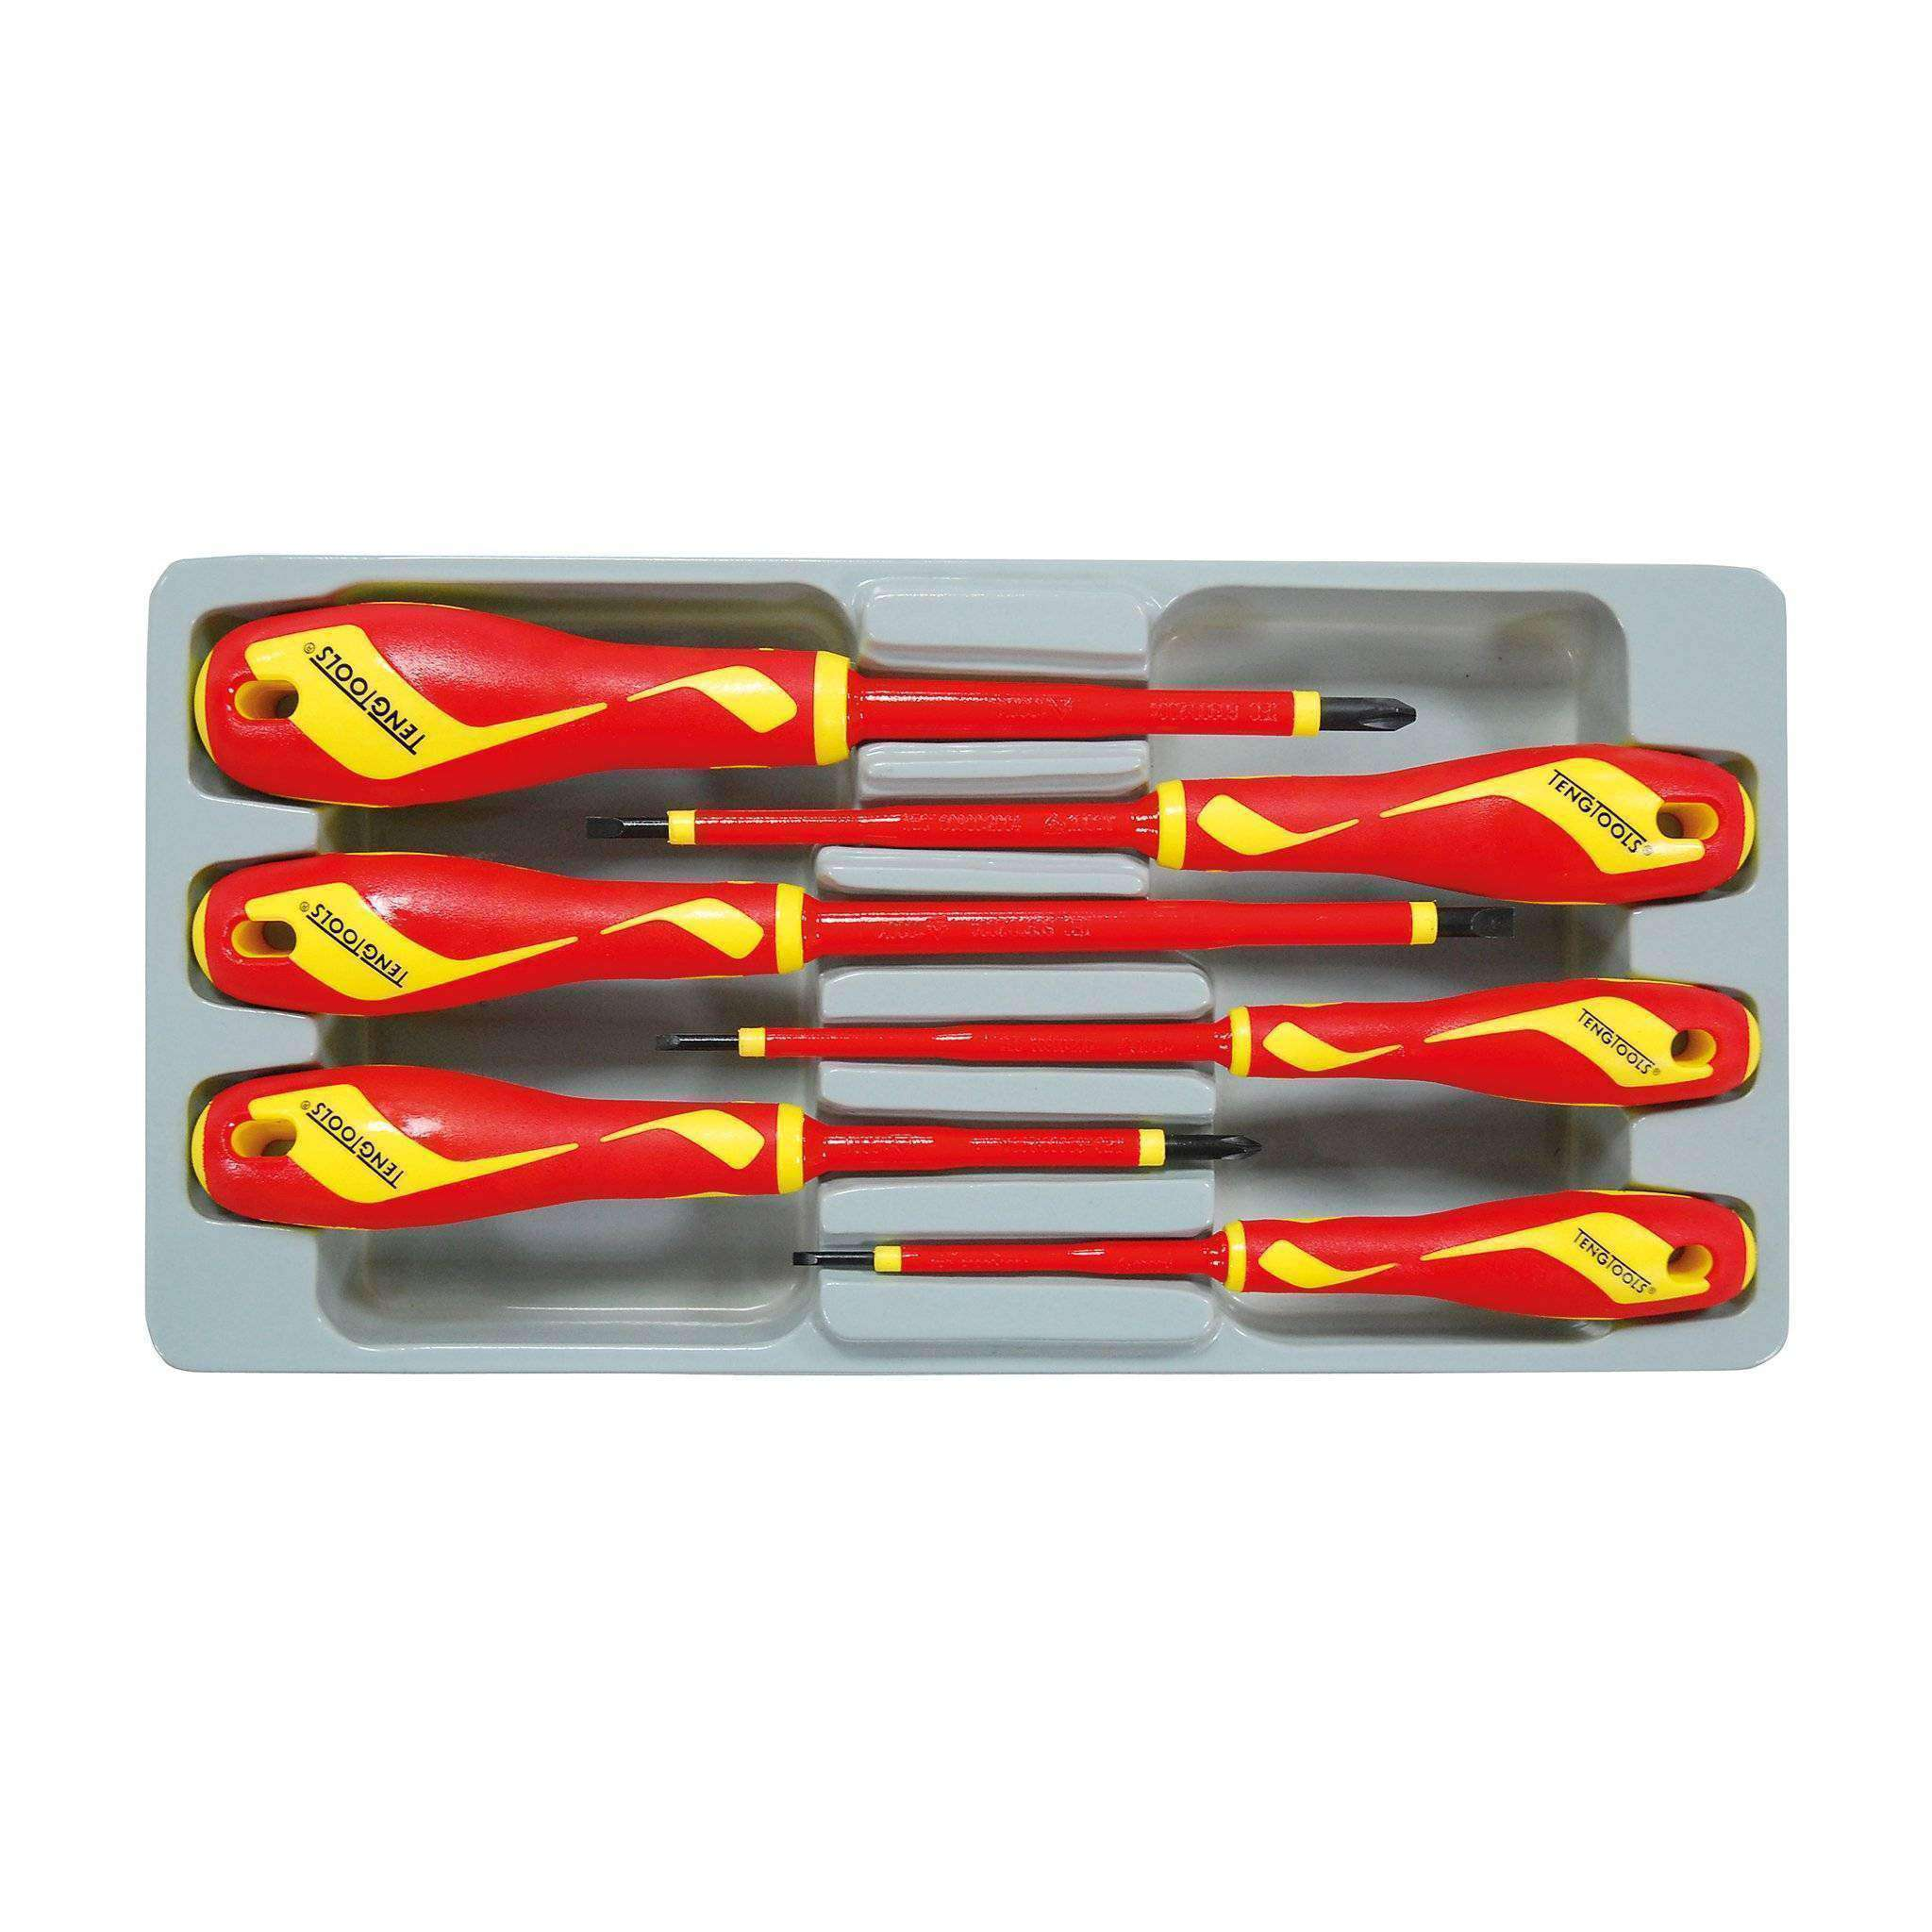 Teng Tools MDV906N - 6 Piece 1000 Volt Insulated Screwdriver Set (Flat, PH) - Teng Tools USA